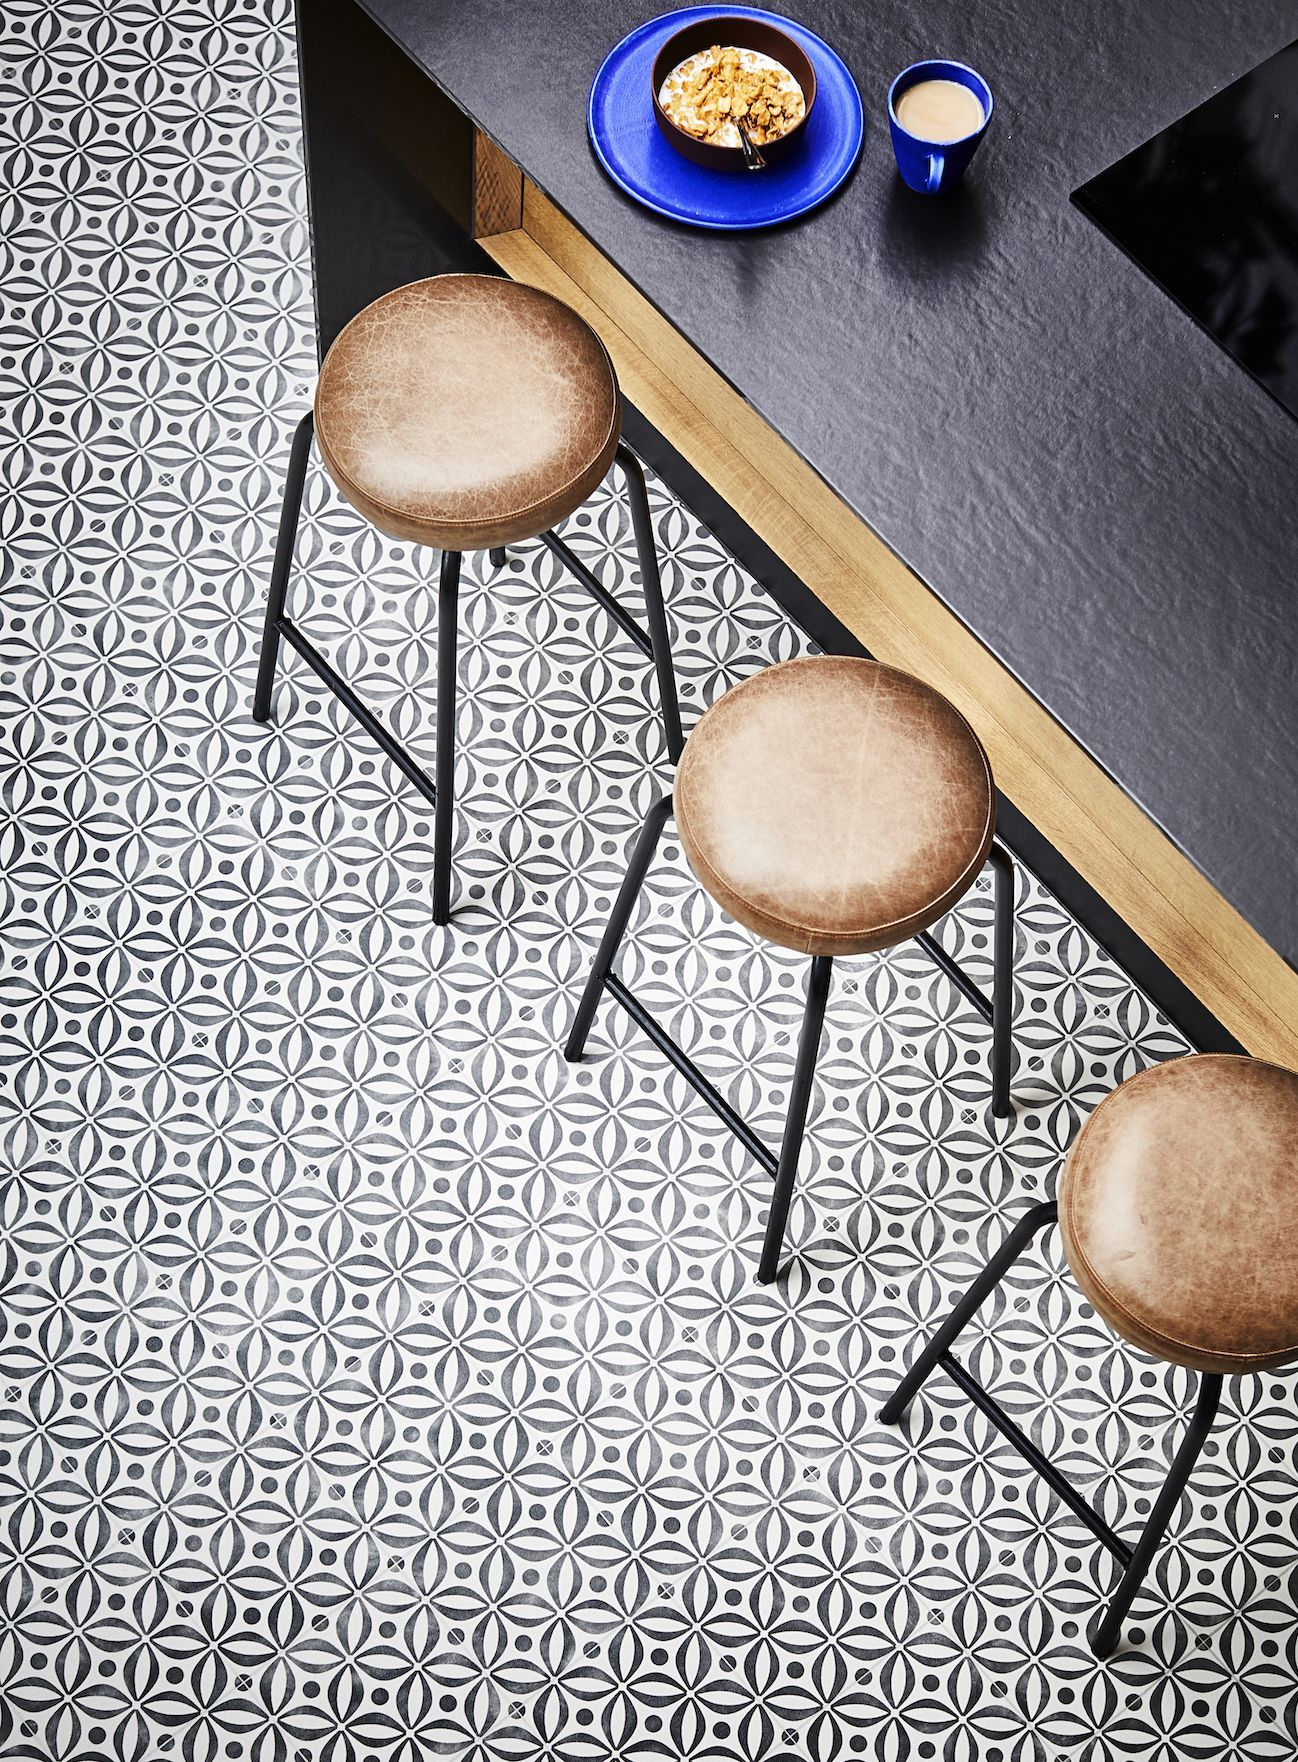 Stylish new vinyl flooring from the Carpetright x House